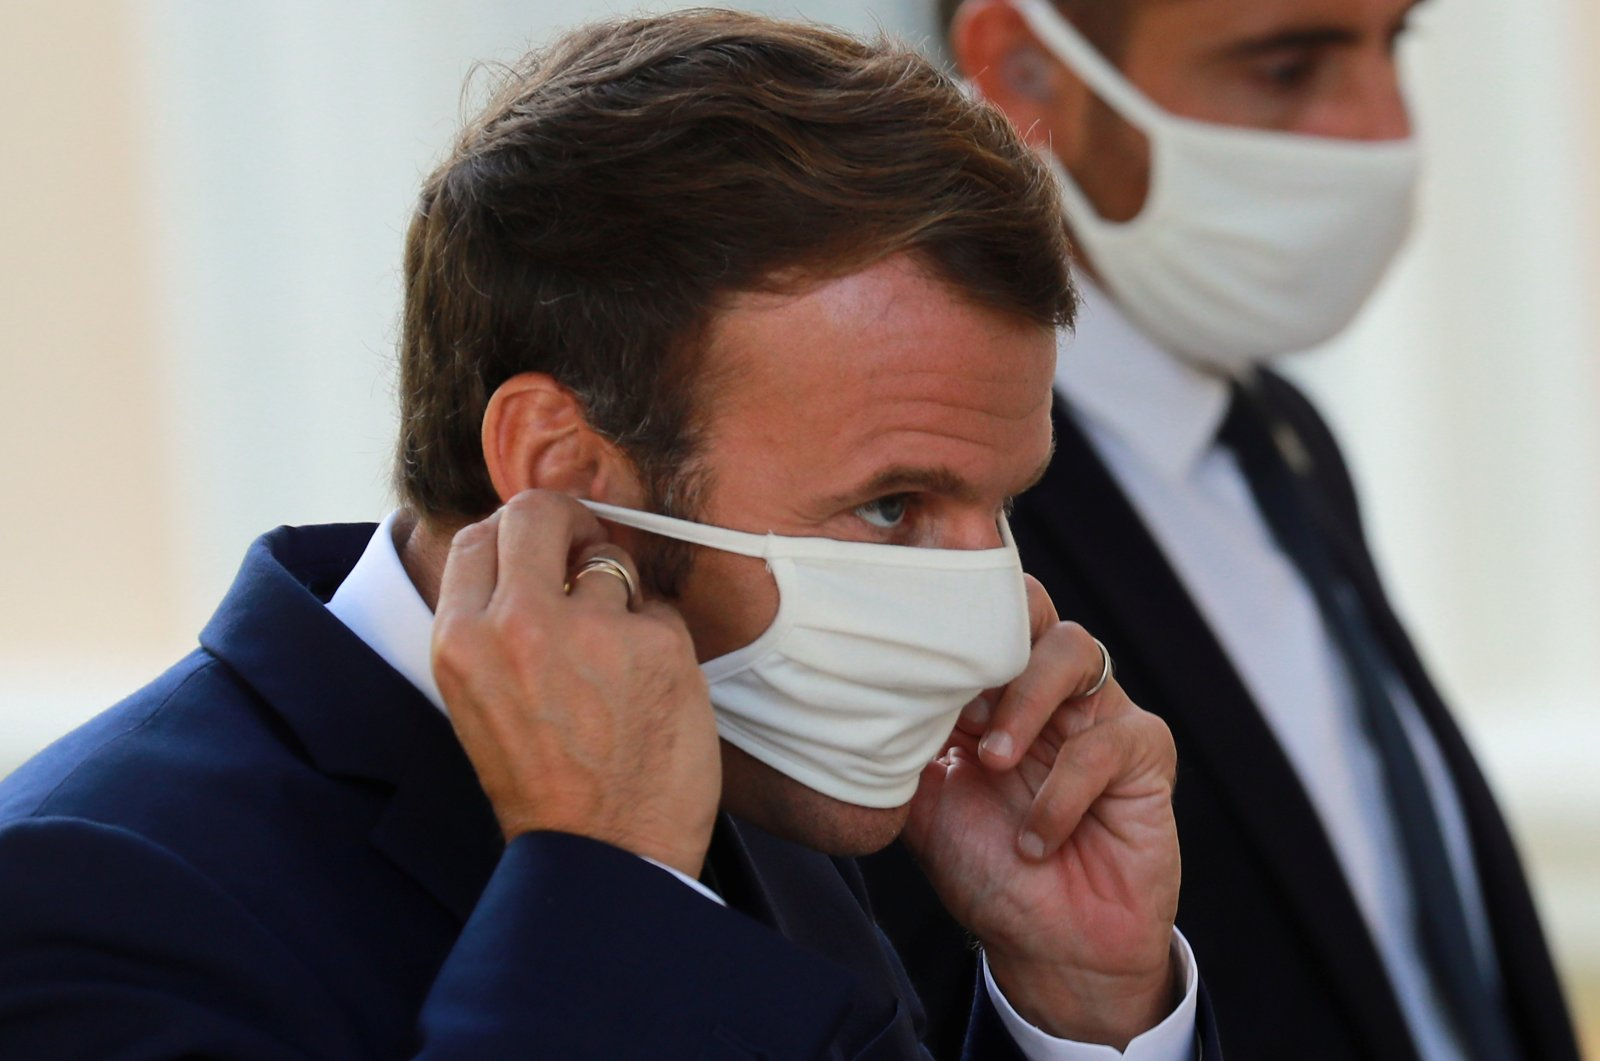 French President Emmanuel Macron puts on his protective mask as he arrives for a news conference in Ajaccio, on the Mediterranean island of Corsica, France, Sept. 10, 2020. (REUTERS Photo)